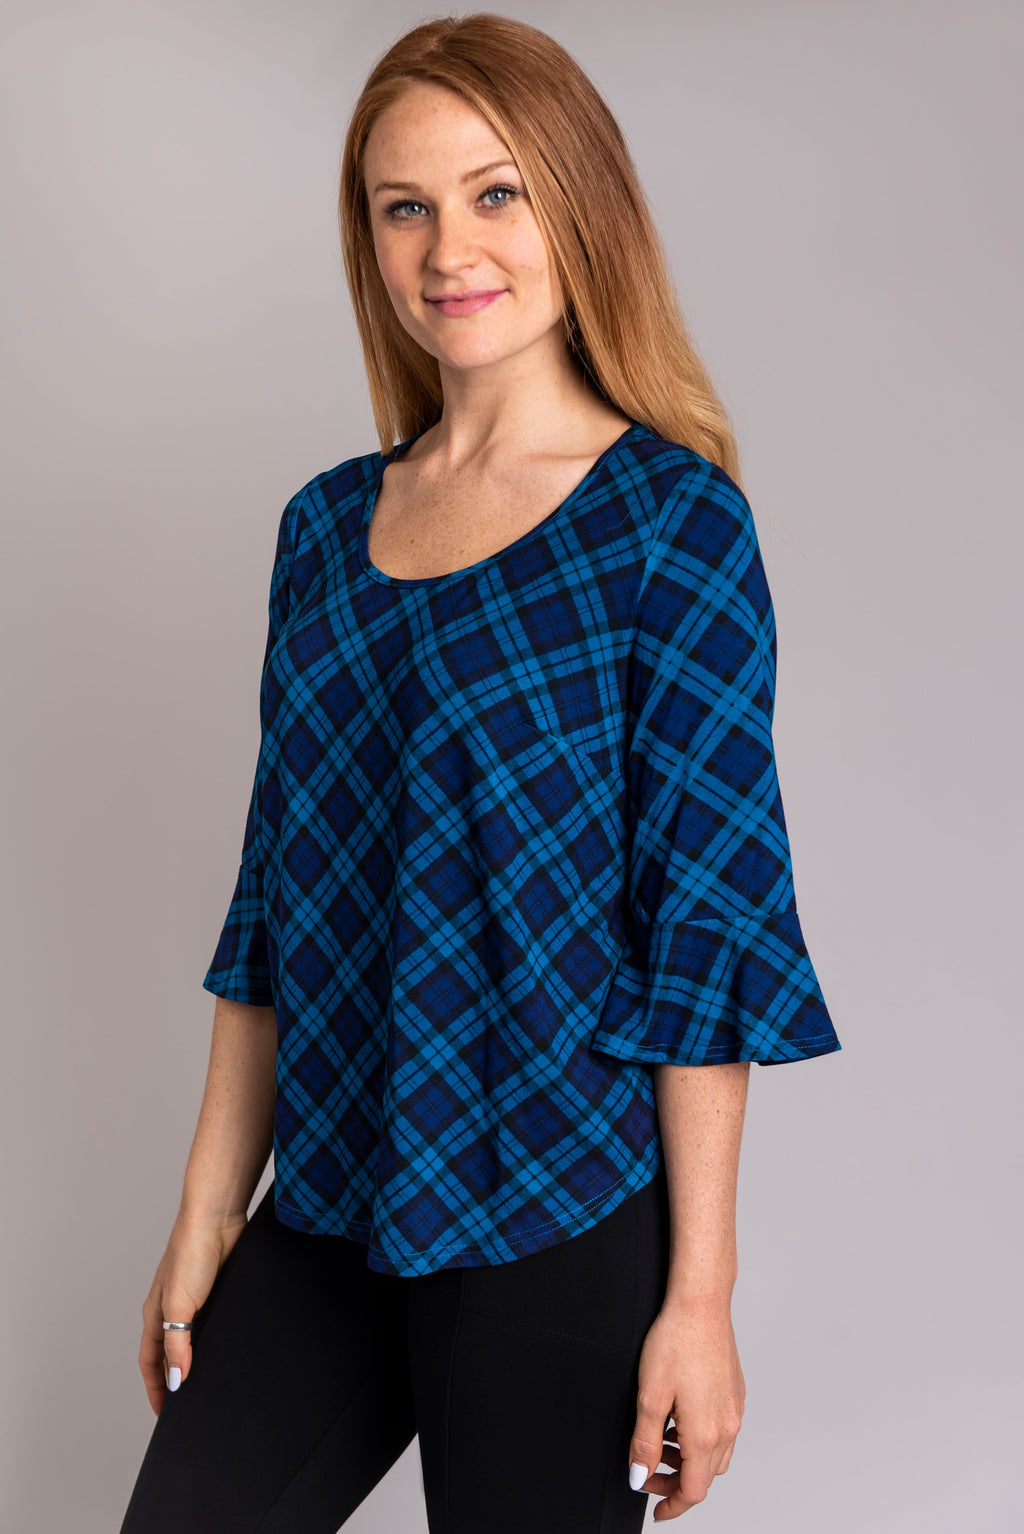 Tiller Top, Teal Plaid - Blue Sky Clothing Co